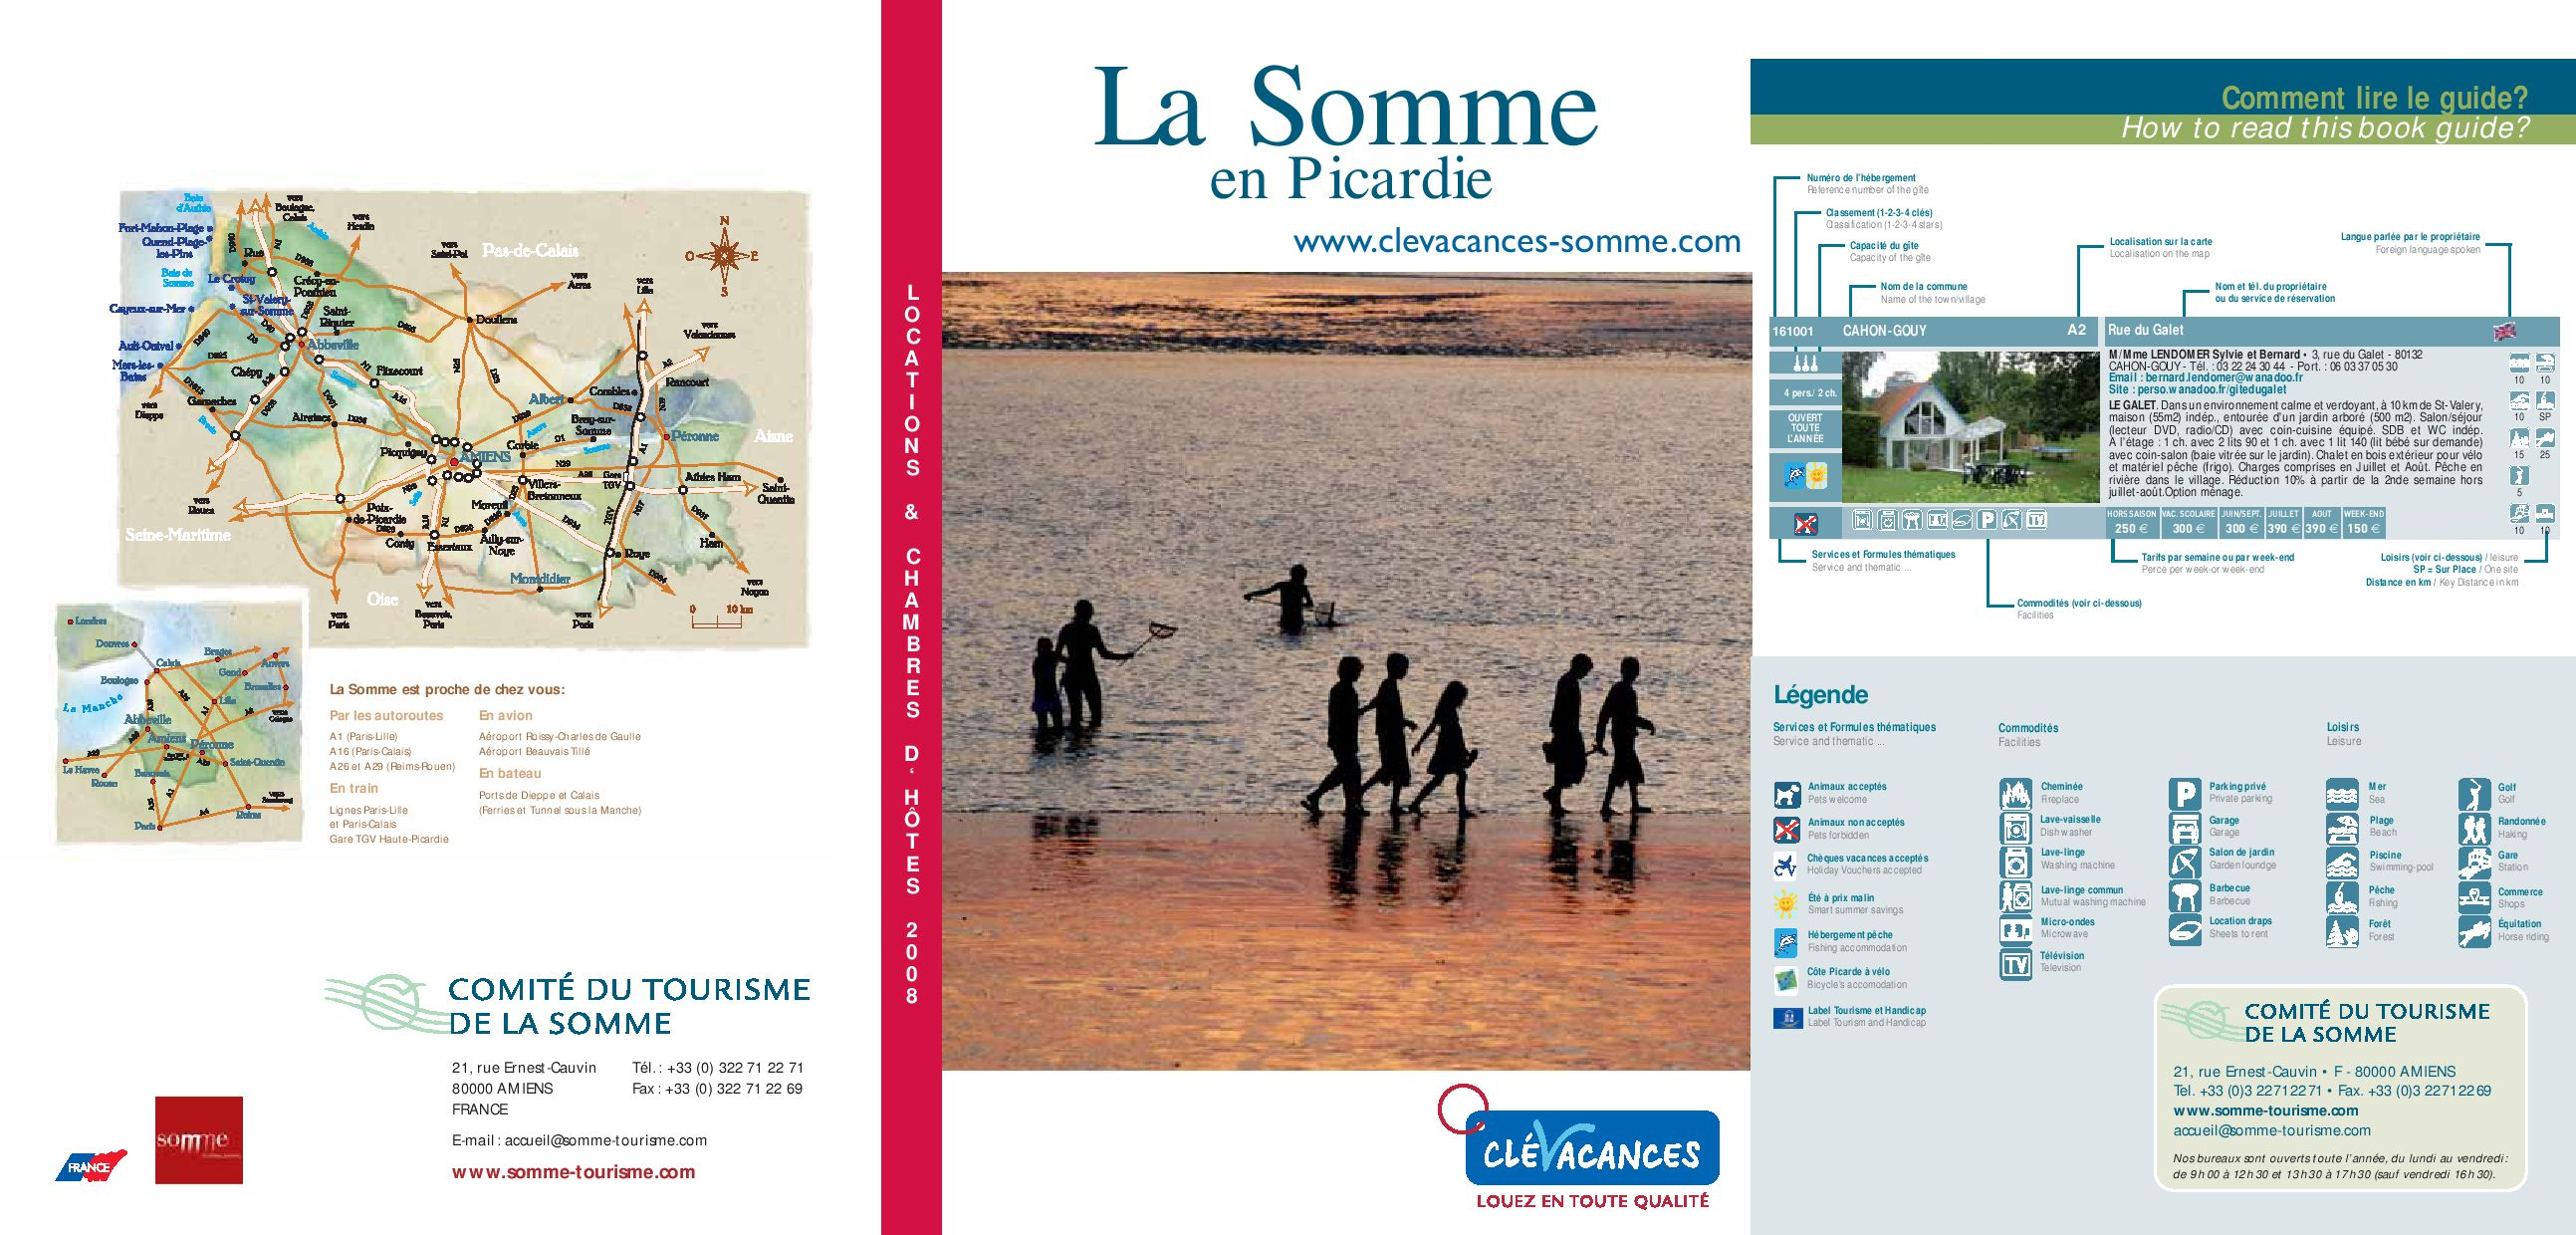 Les Oyats Le Crotoy clevacancesvirginie noppe - issuu